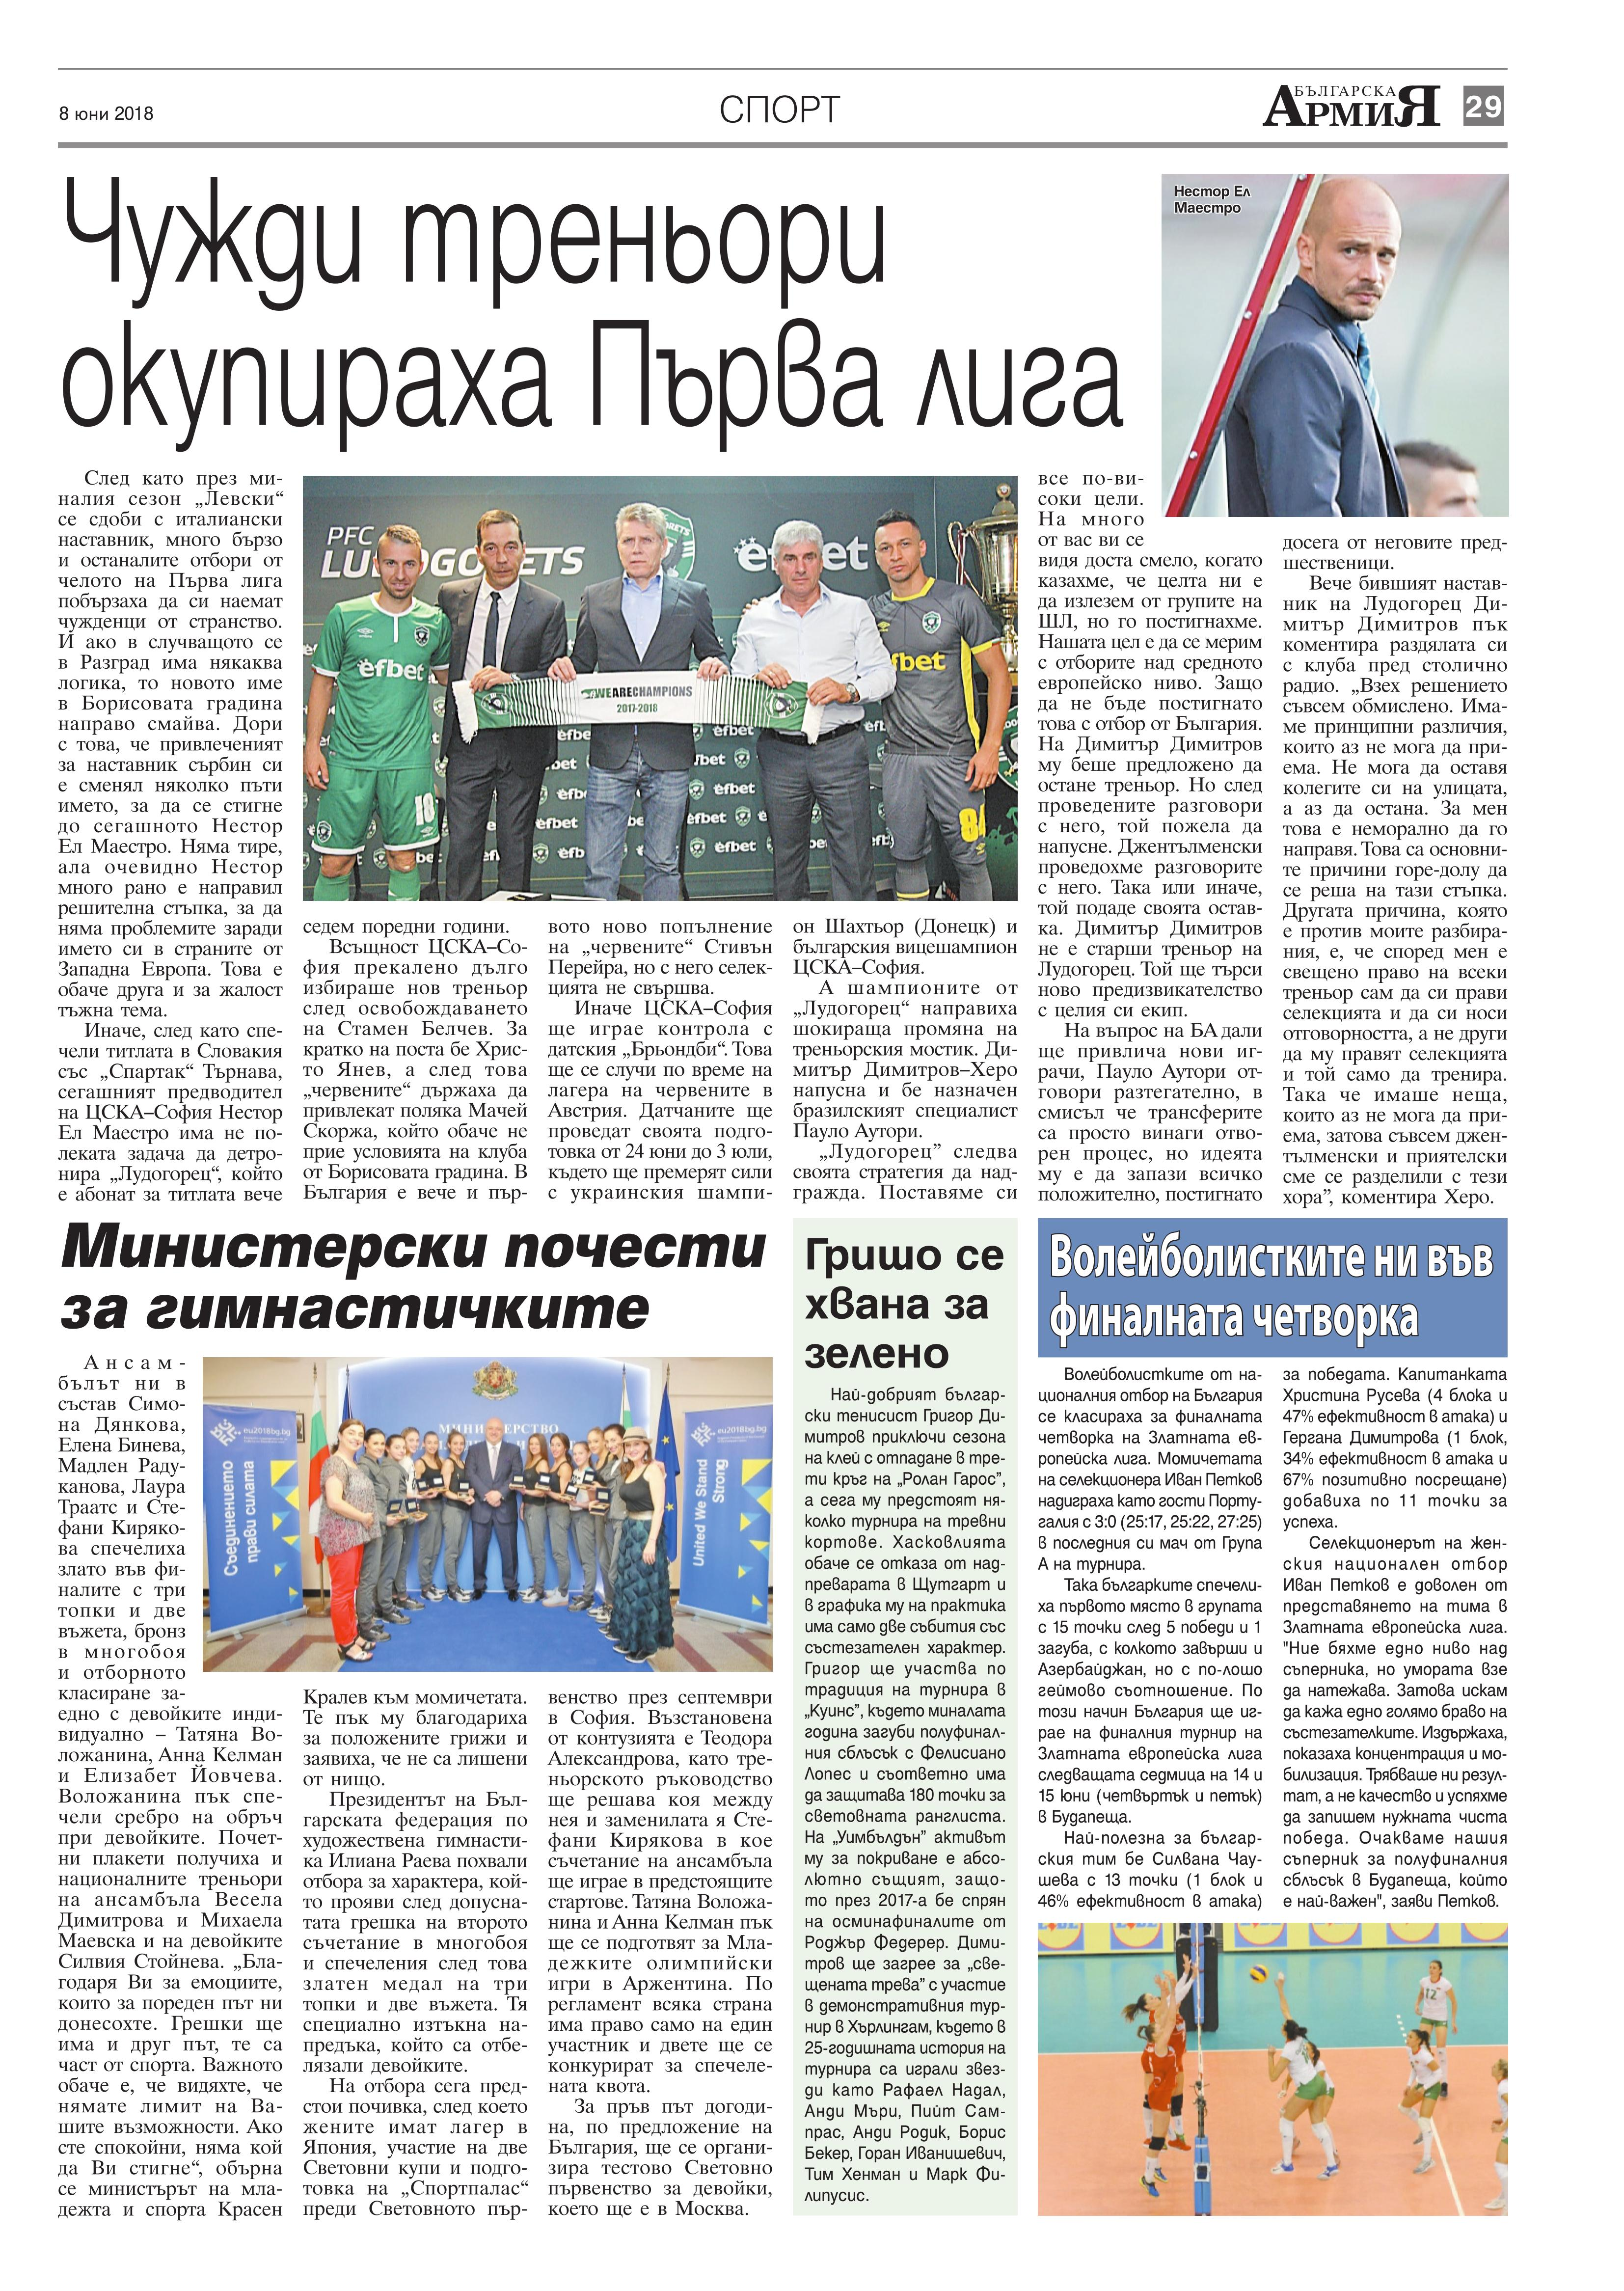 https://armymedia.bg/wp-content/uploads/2015/06/29.page1_-48.jpg